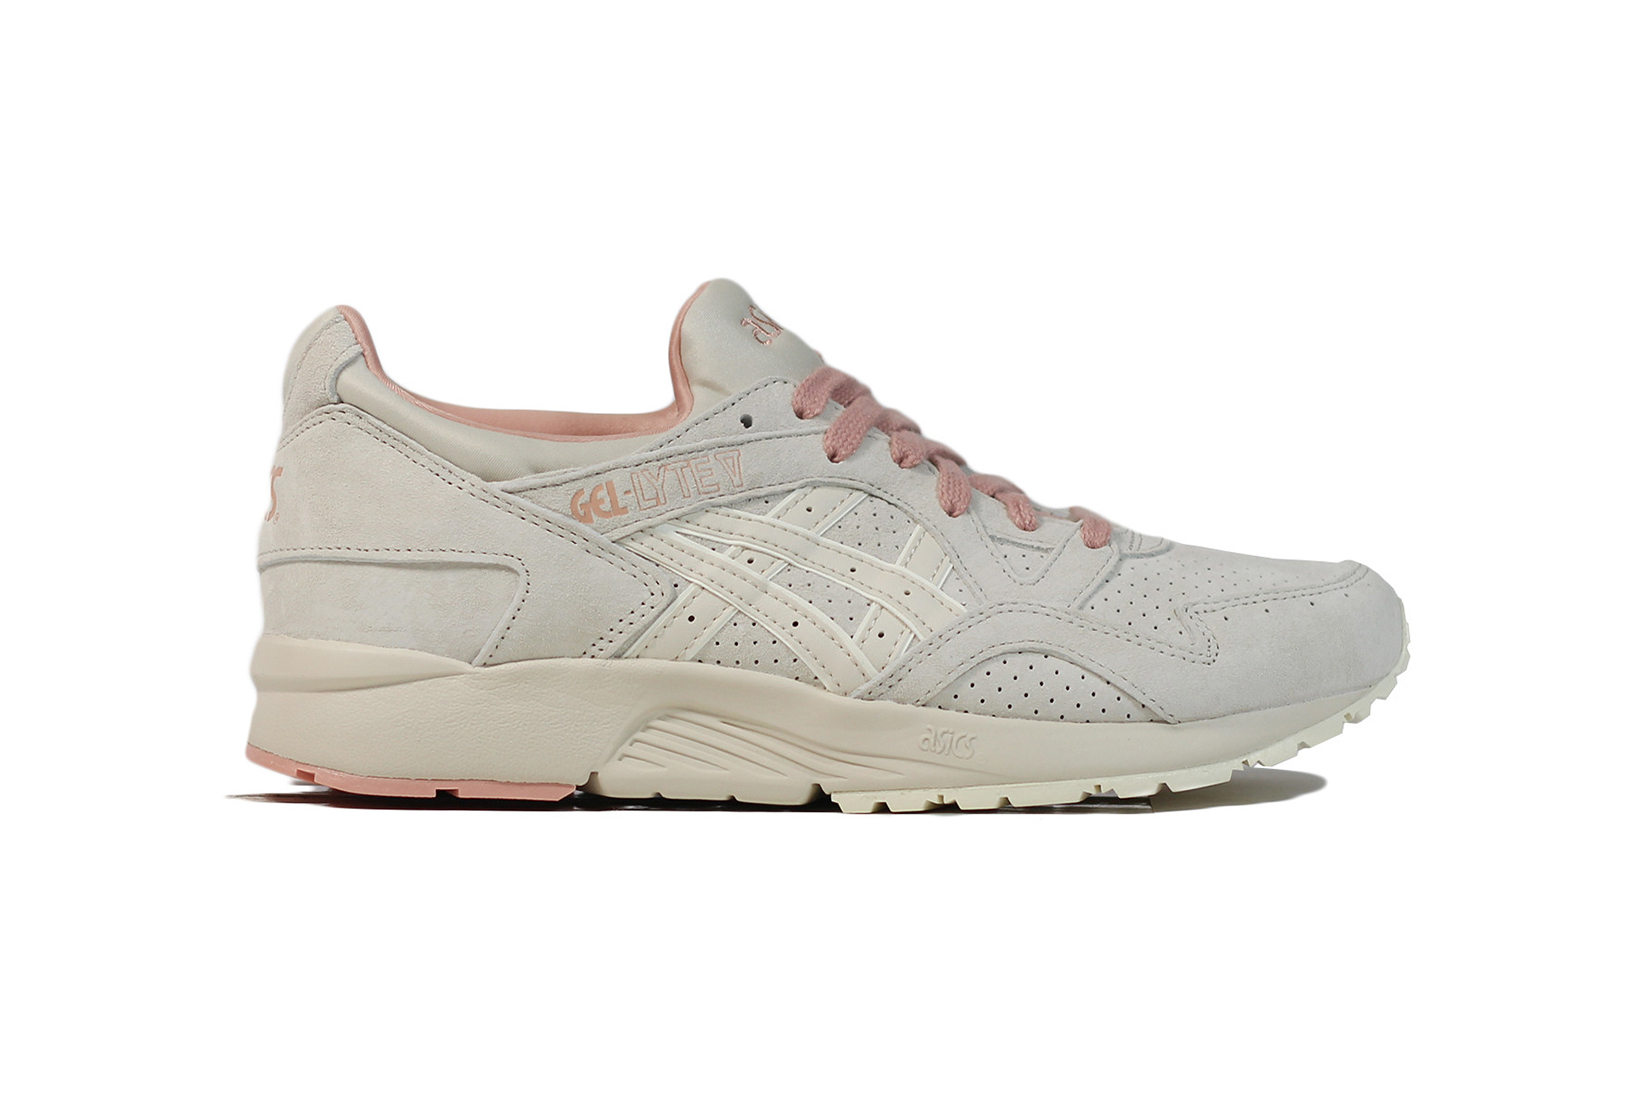 ASICS GEL Lyte V Strawberries Cream Pack